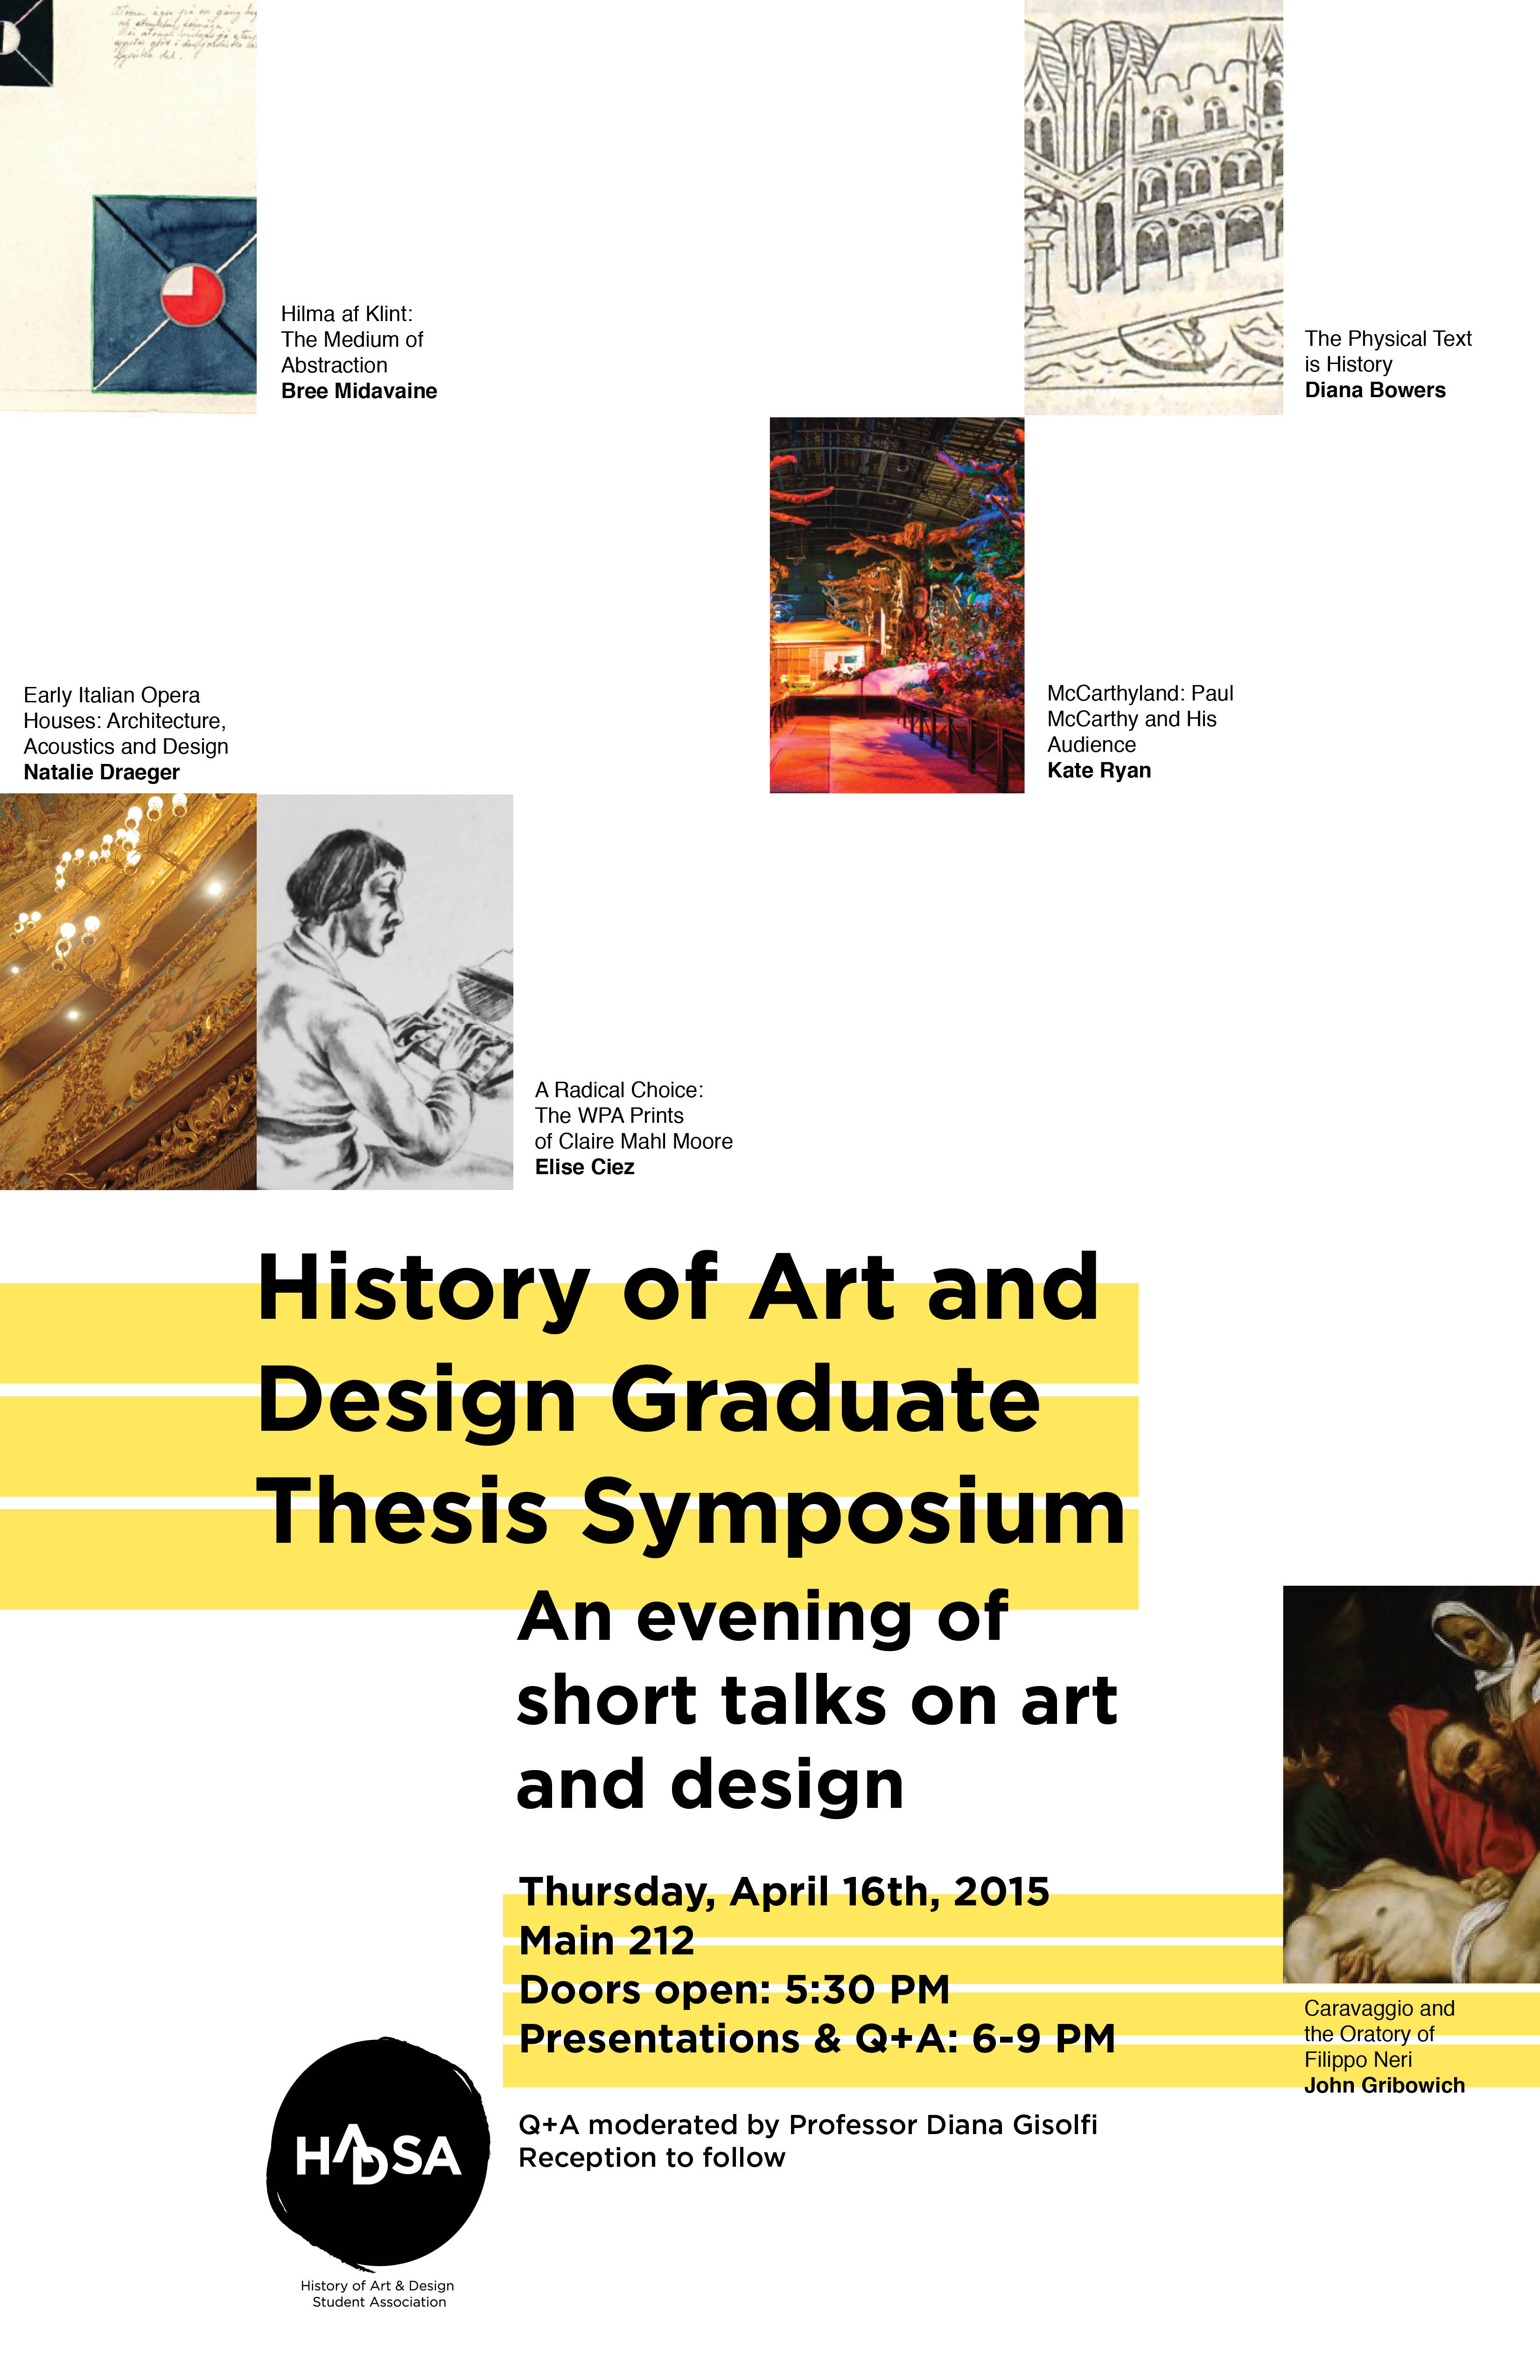 Doctorate thesis in history of art